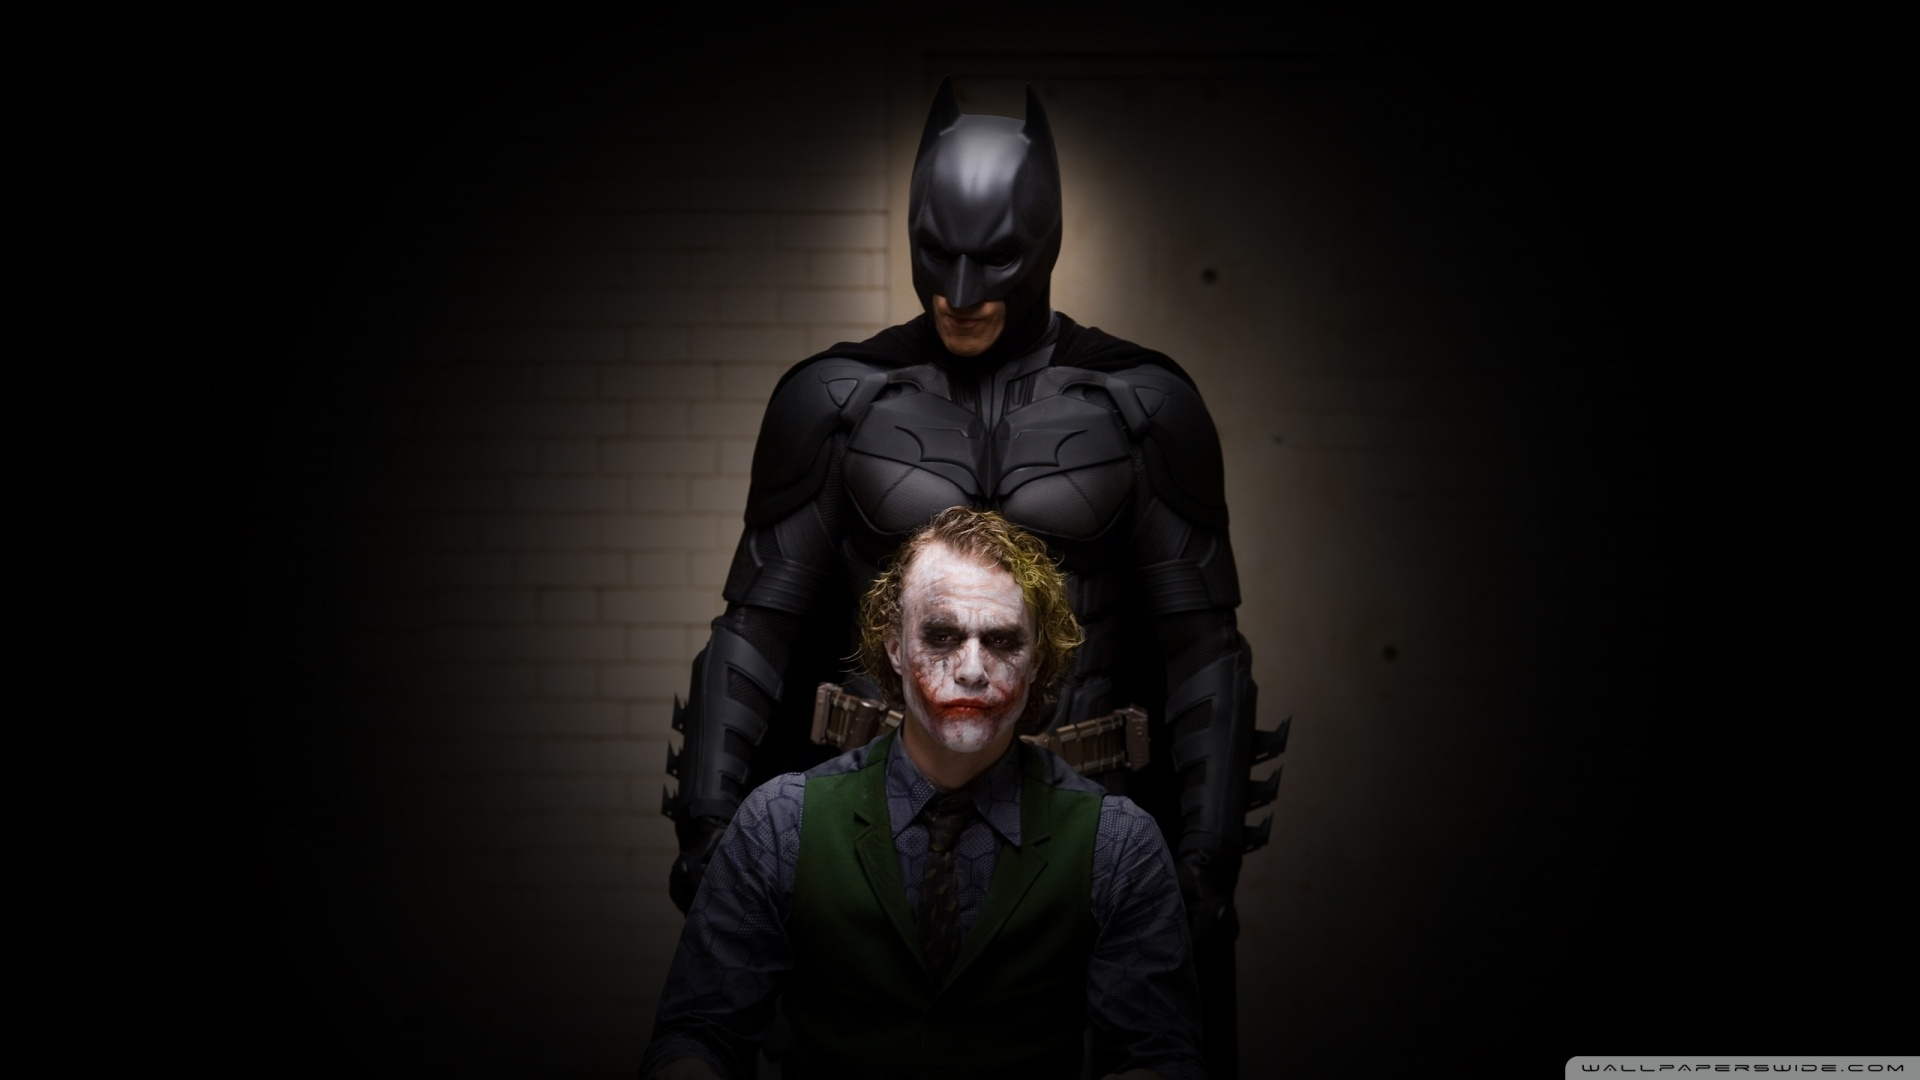 Batman And Joker Wallpaper 1920x1080 Batman And Joker 1920x1080